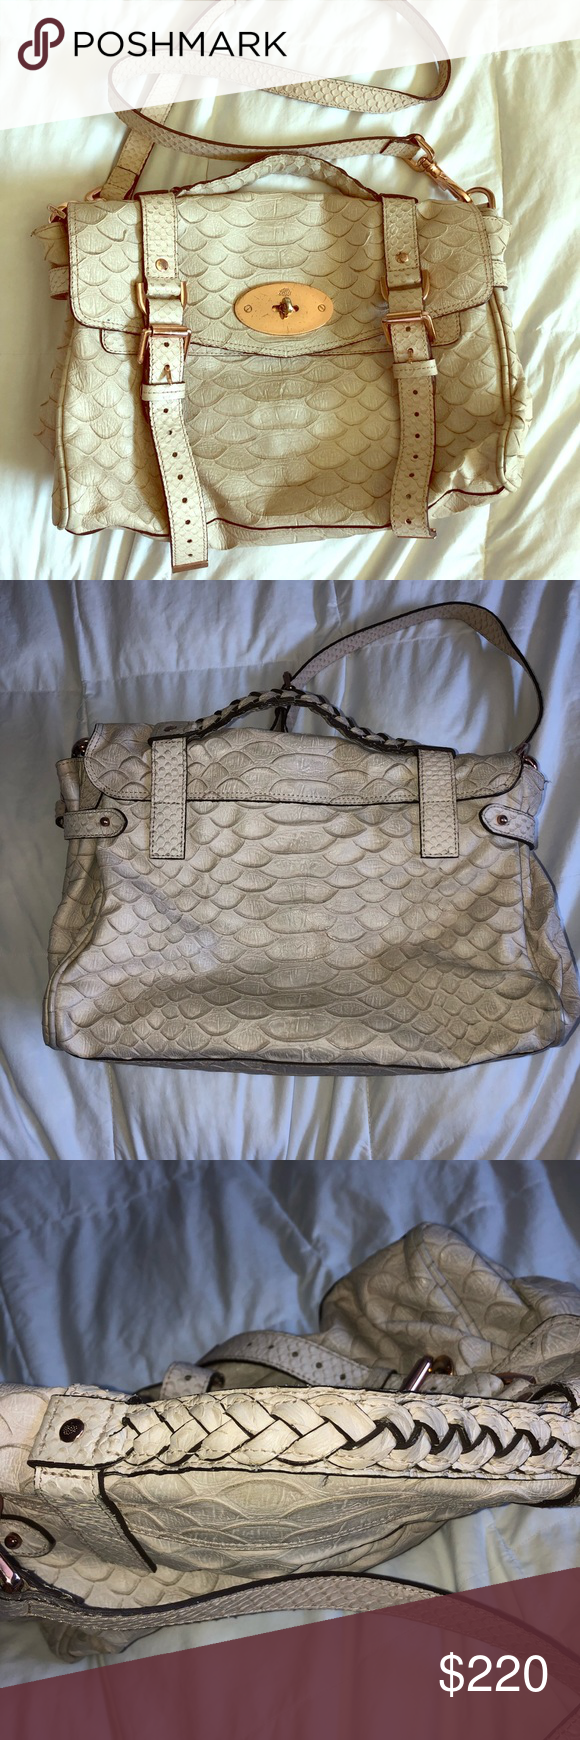 Mulberry Bag Beautifully made Mulberry Bag.Can be used as a Sling Bag or just a shoulder bag. Mulberry Bags Shoulder Bags #mulberrybag